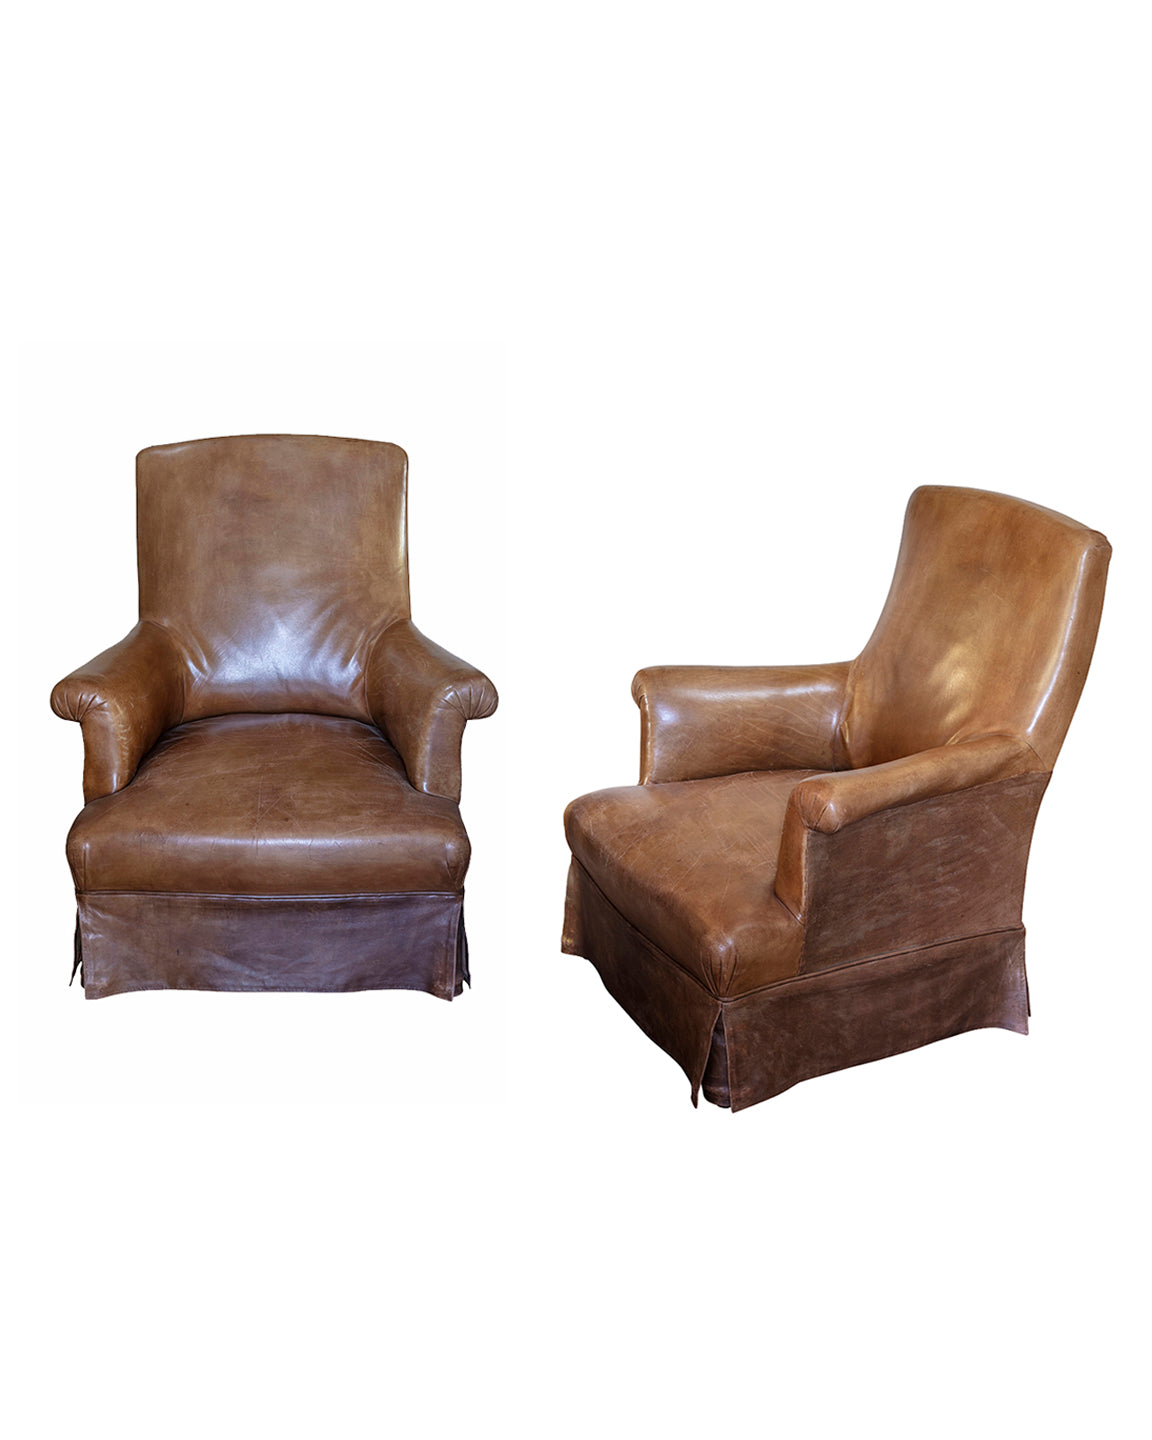 Pair of brandy leather armchairs